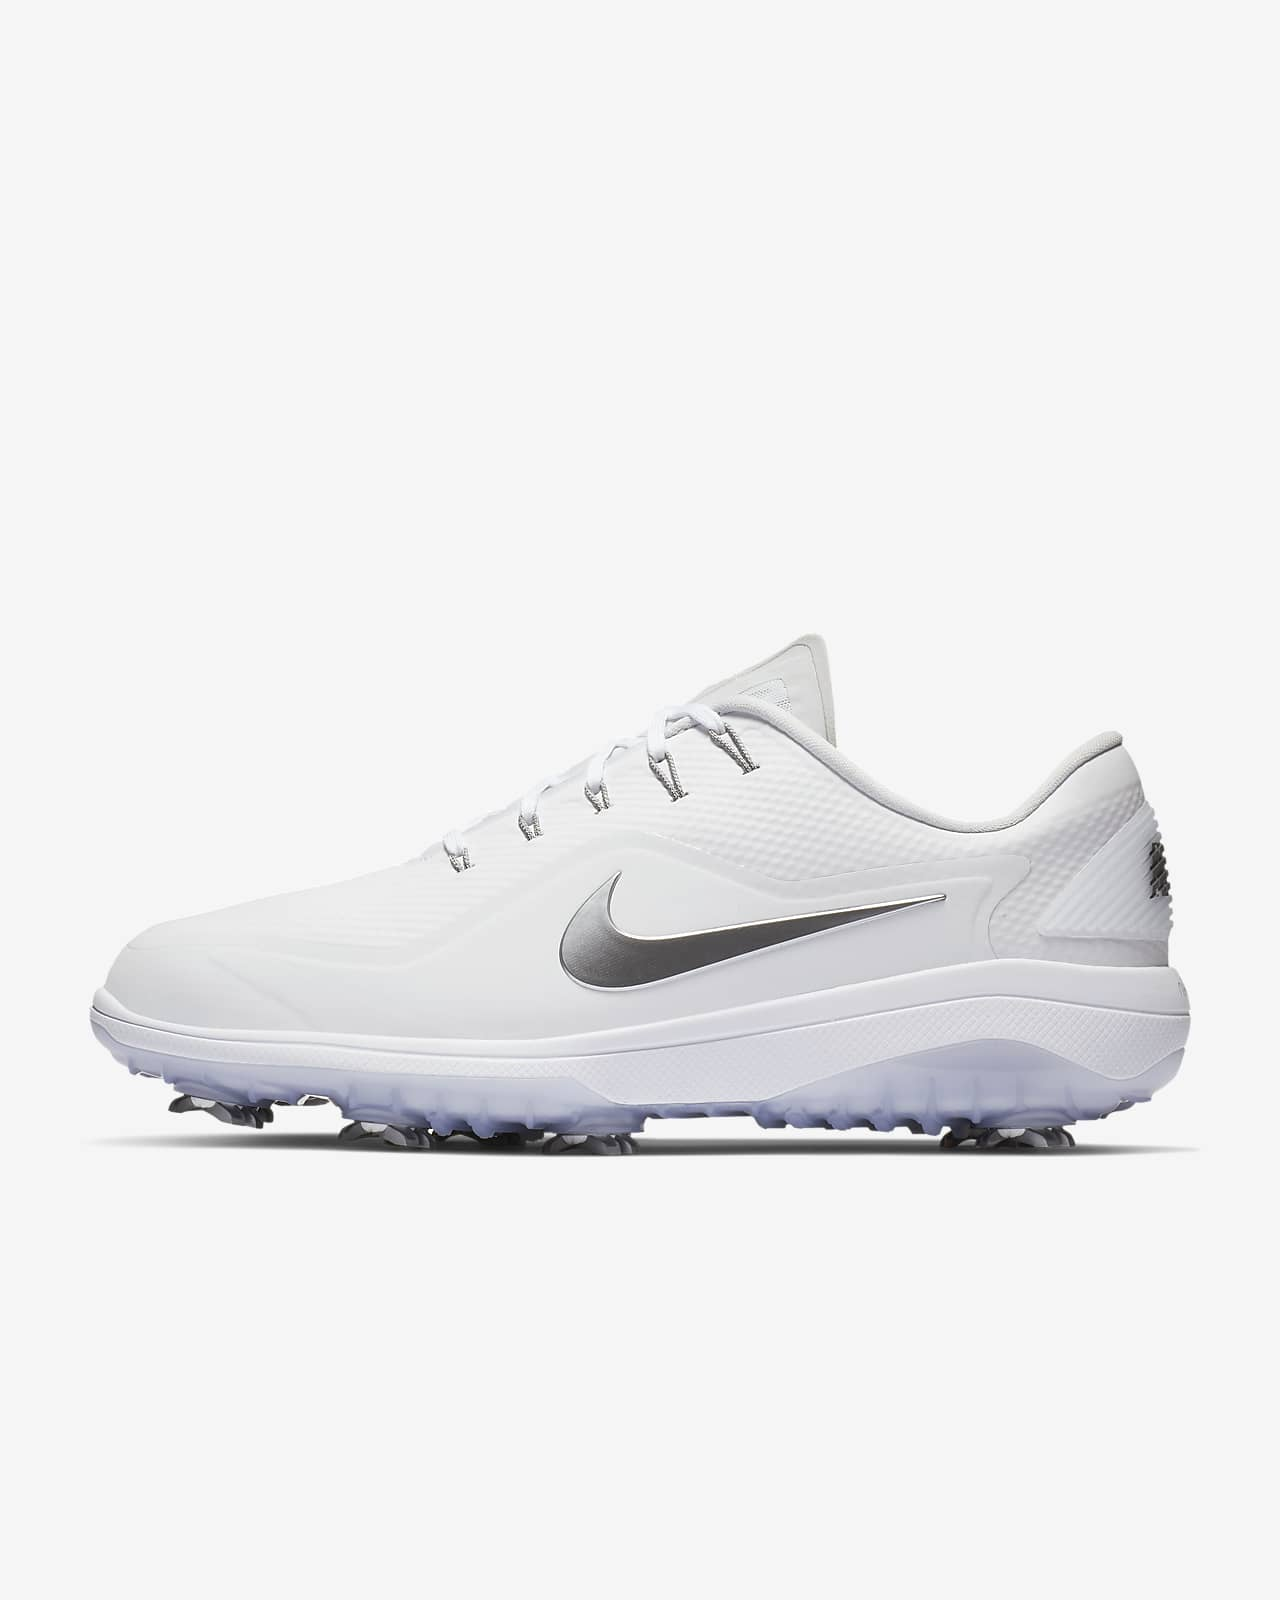 Valiente Cha simplemente  Nike React Vapor 2 Men's Golf Shoe (Wide). Nike MY